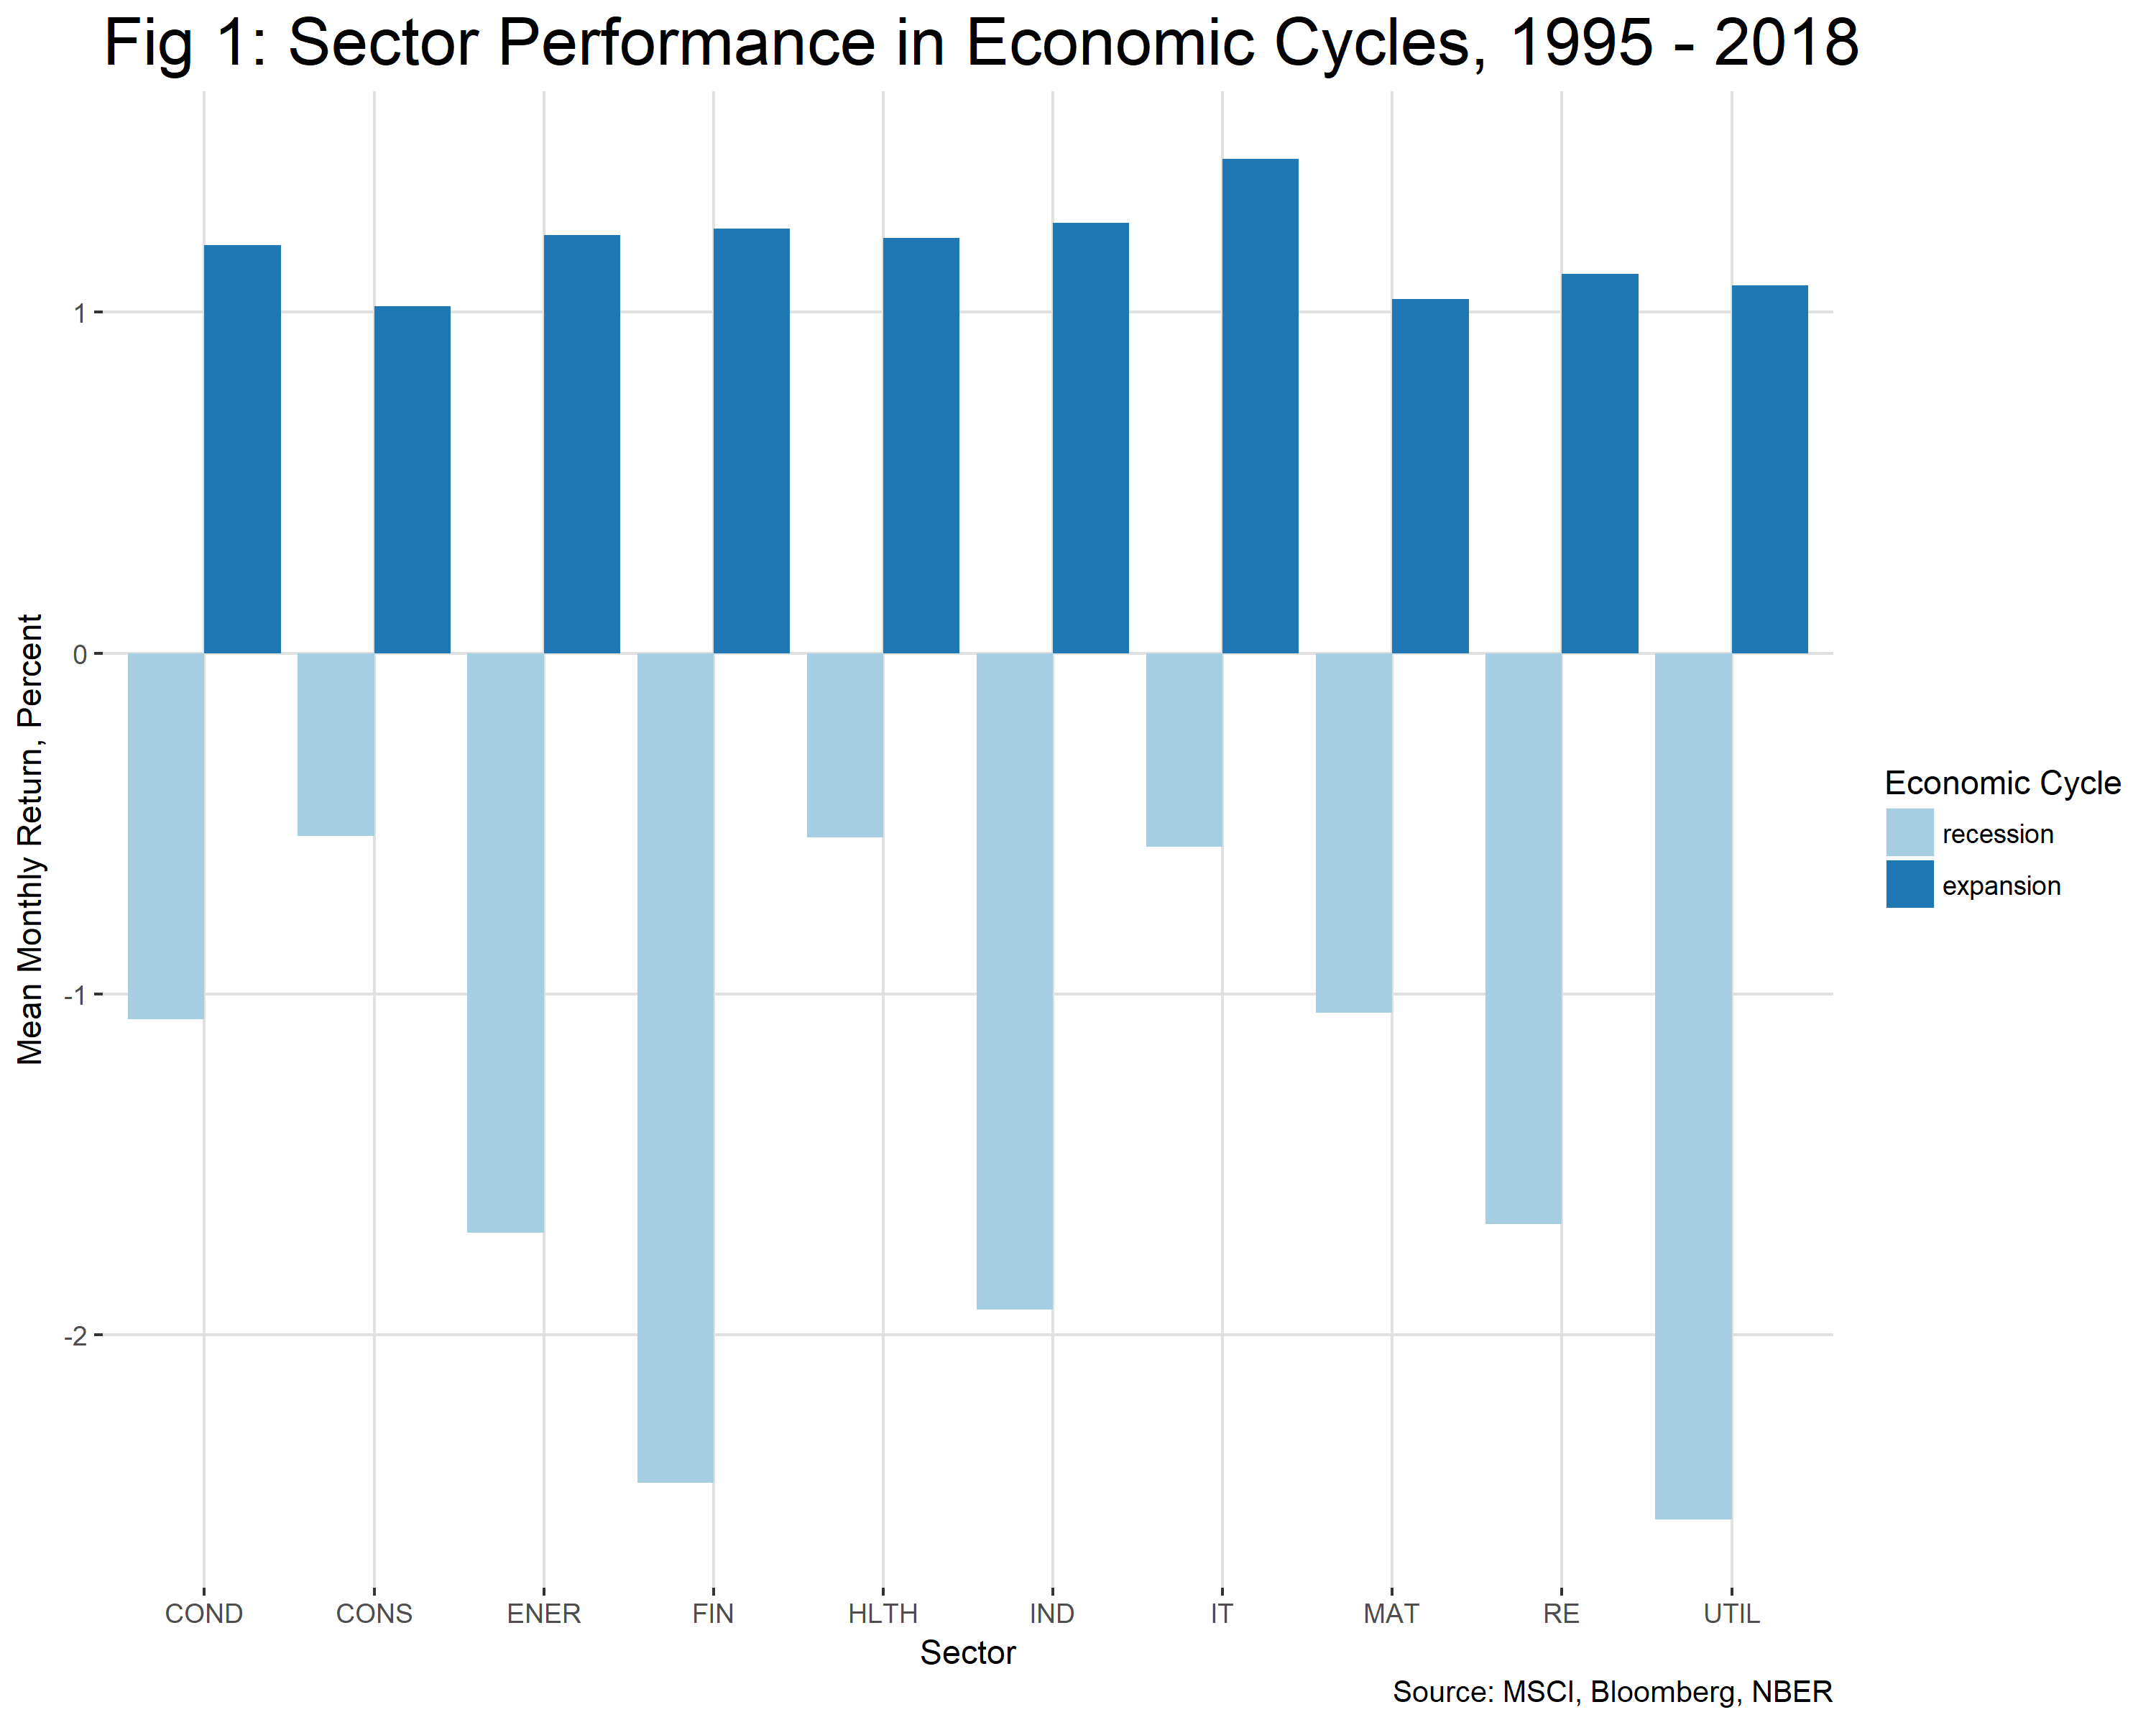 Sector Performance in Economic Cycles 1995-2018